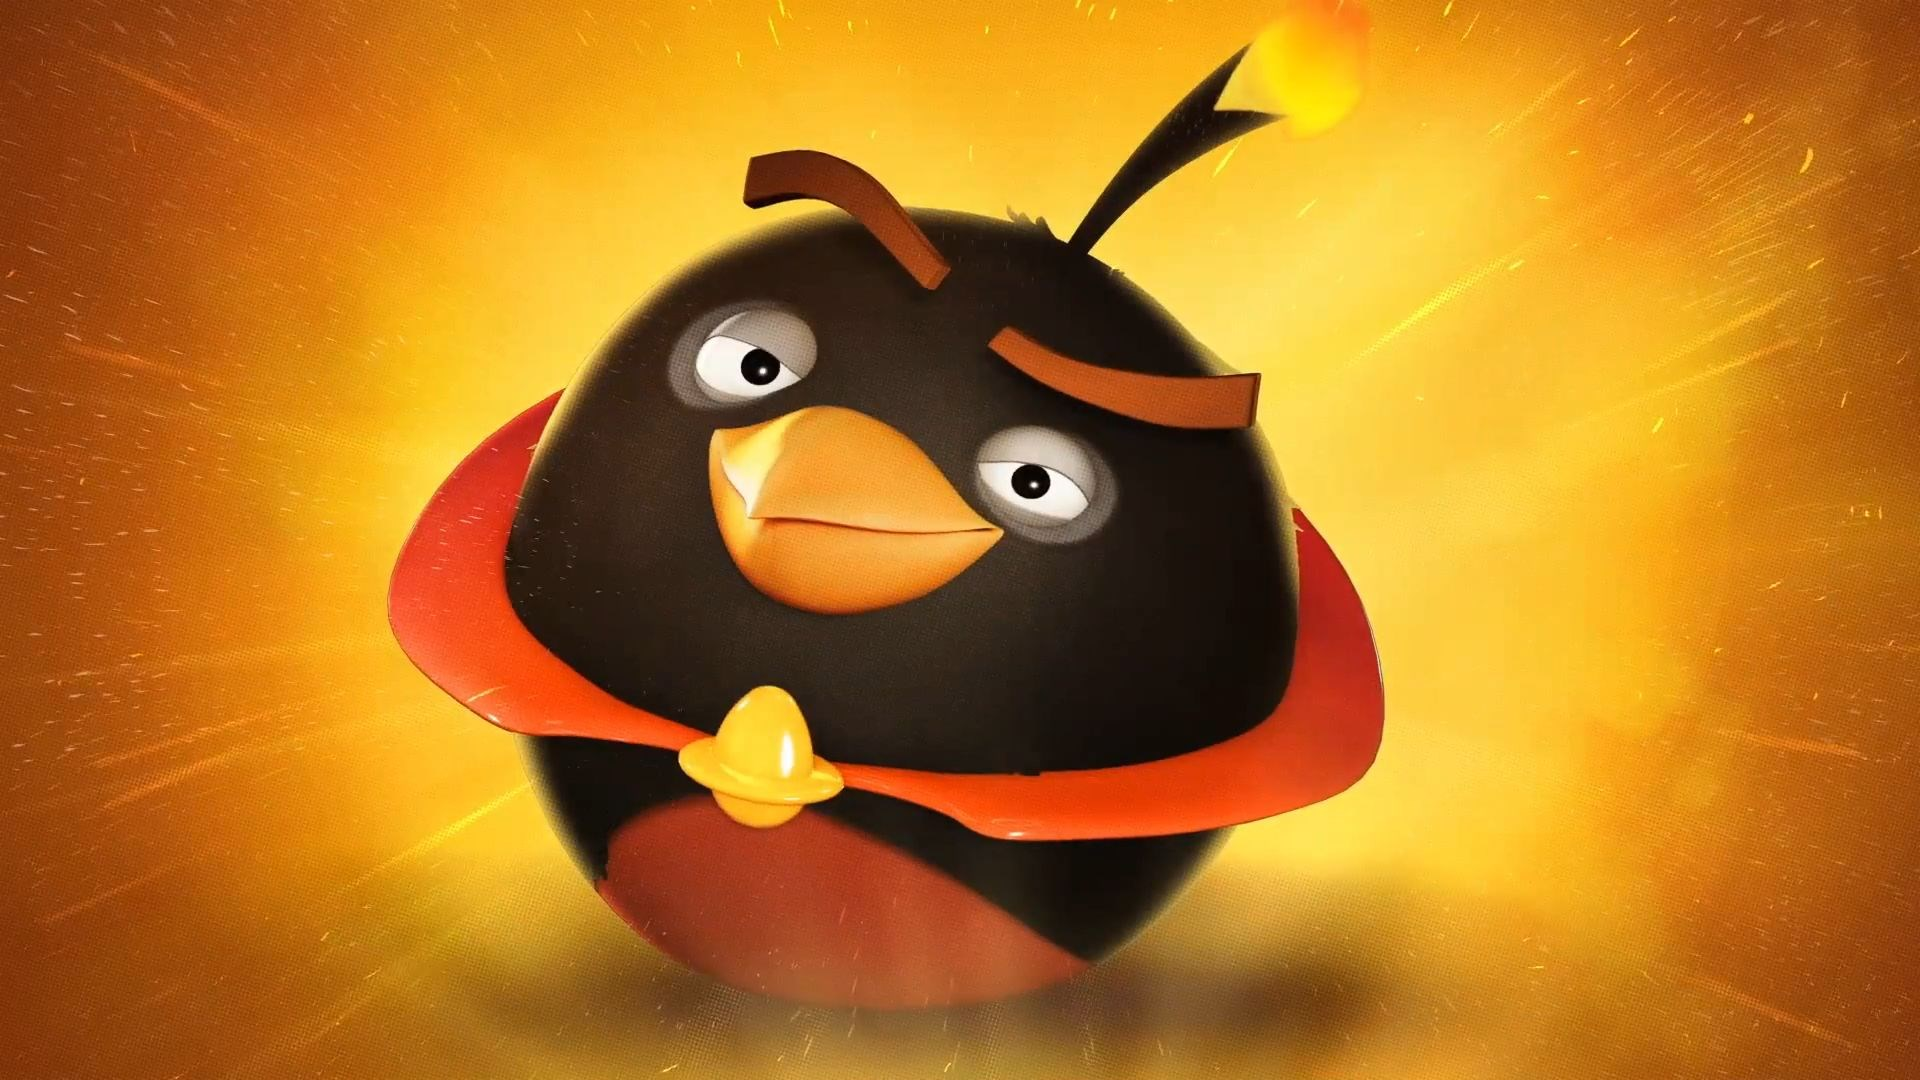 1920-x-1080-px-pictures-of-angry-birds-by-Quantay-Walter-for-TWD-wallpaper-wp340721